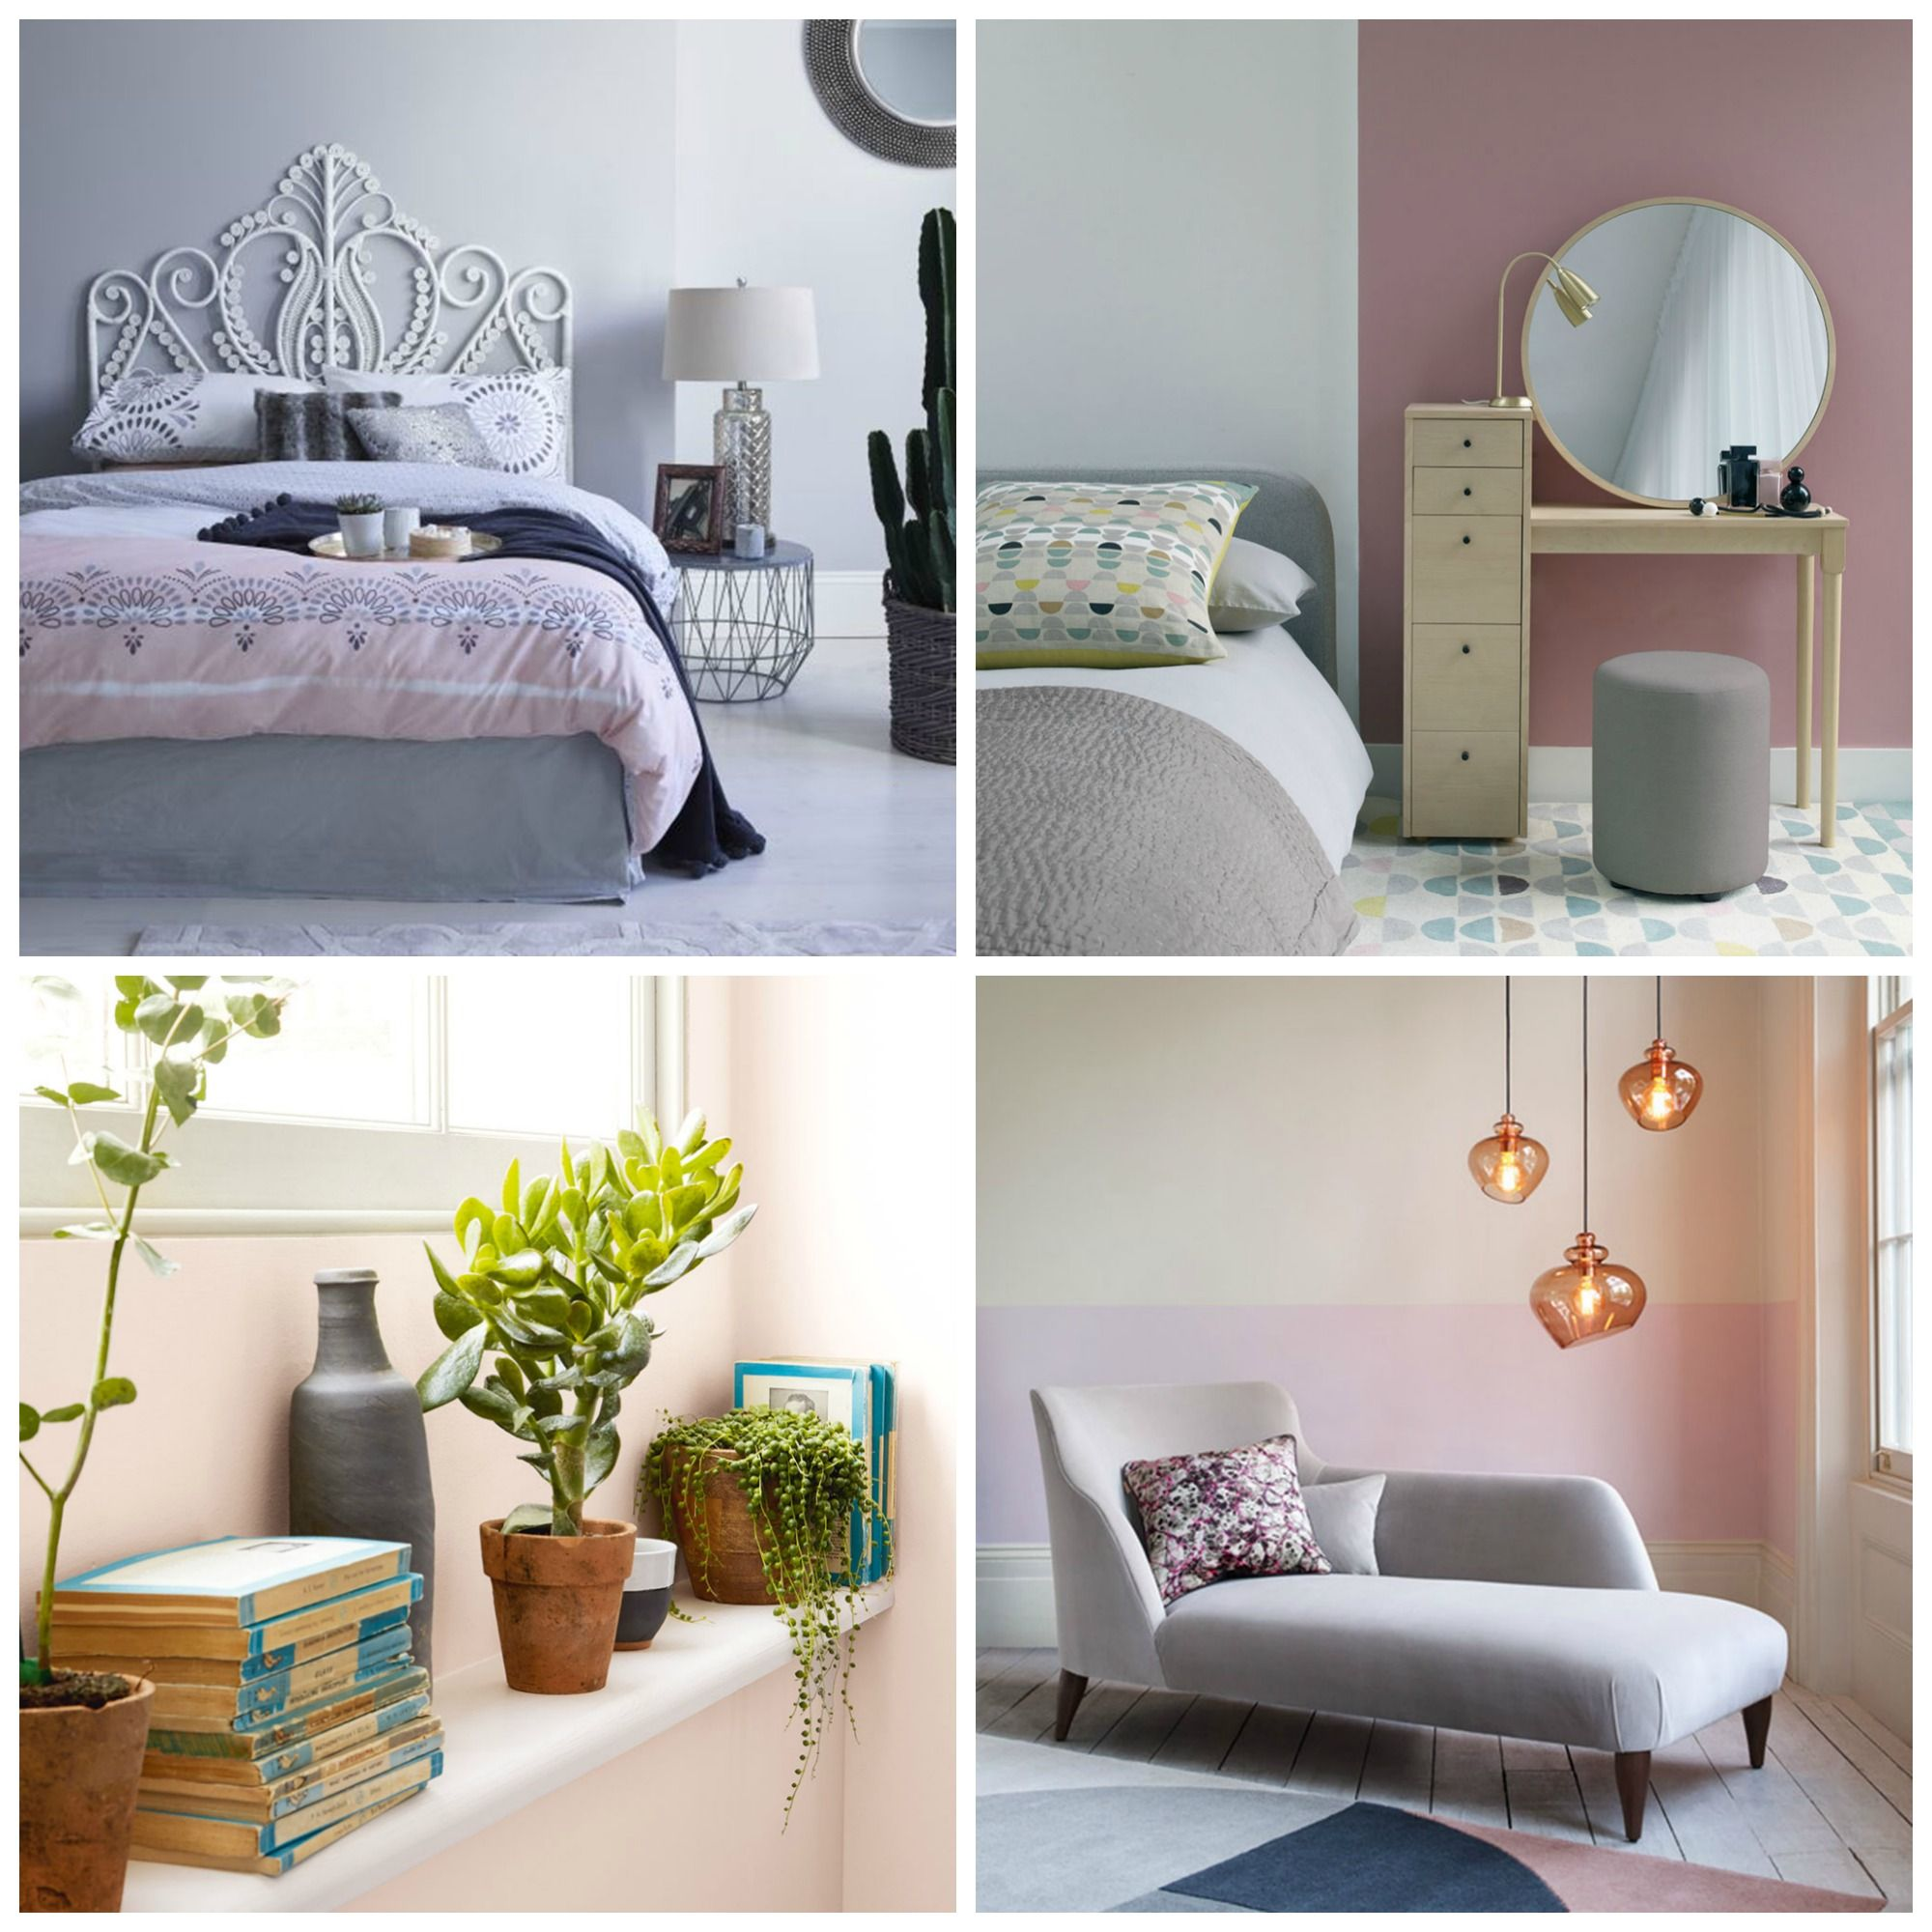 12 pink and grey bedroom ideas - pink and grey bedroom ...